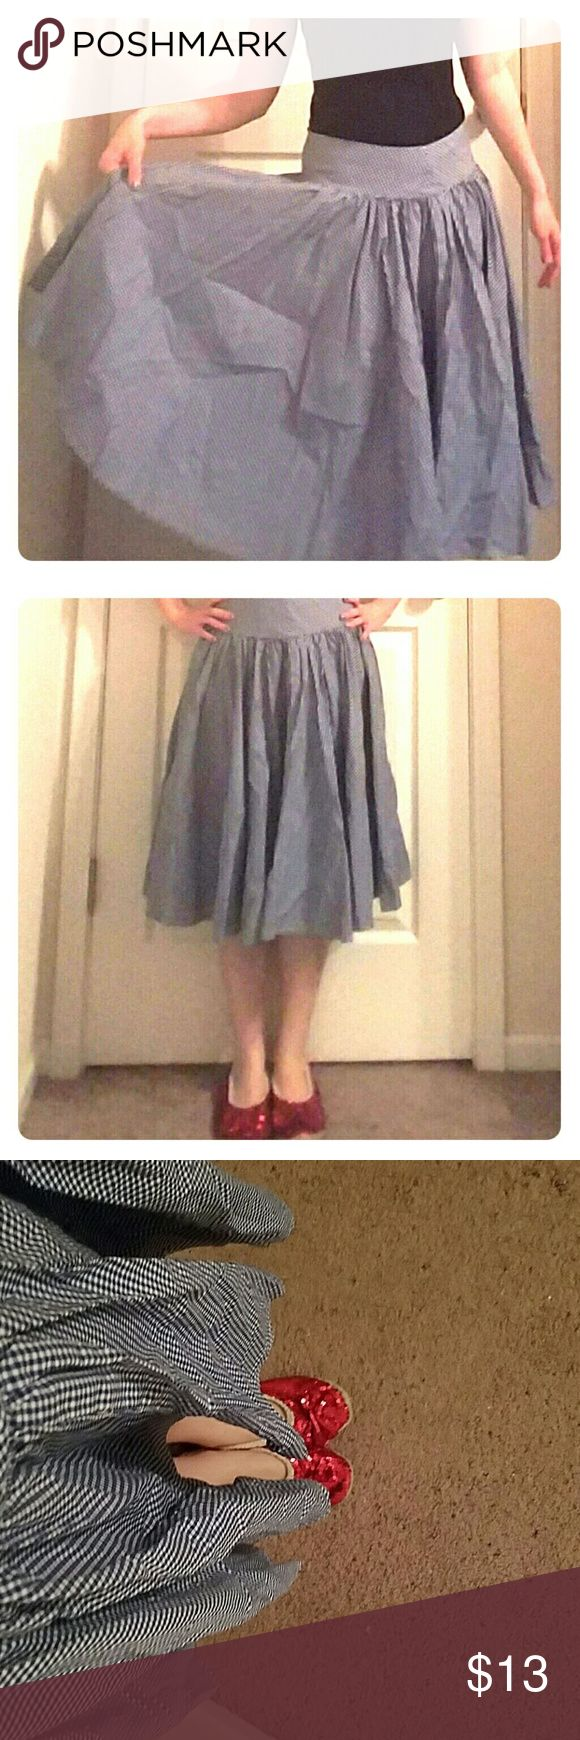 A-line gingham skirt You're not in Kansas anymore! I always feel like Dorothy in this blue and white checked midi skirt. Ruby slippers not included. Ralph Lauren Skirts A-Line or Full